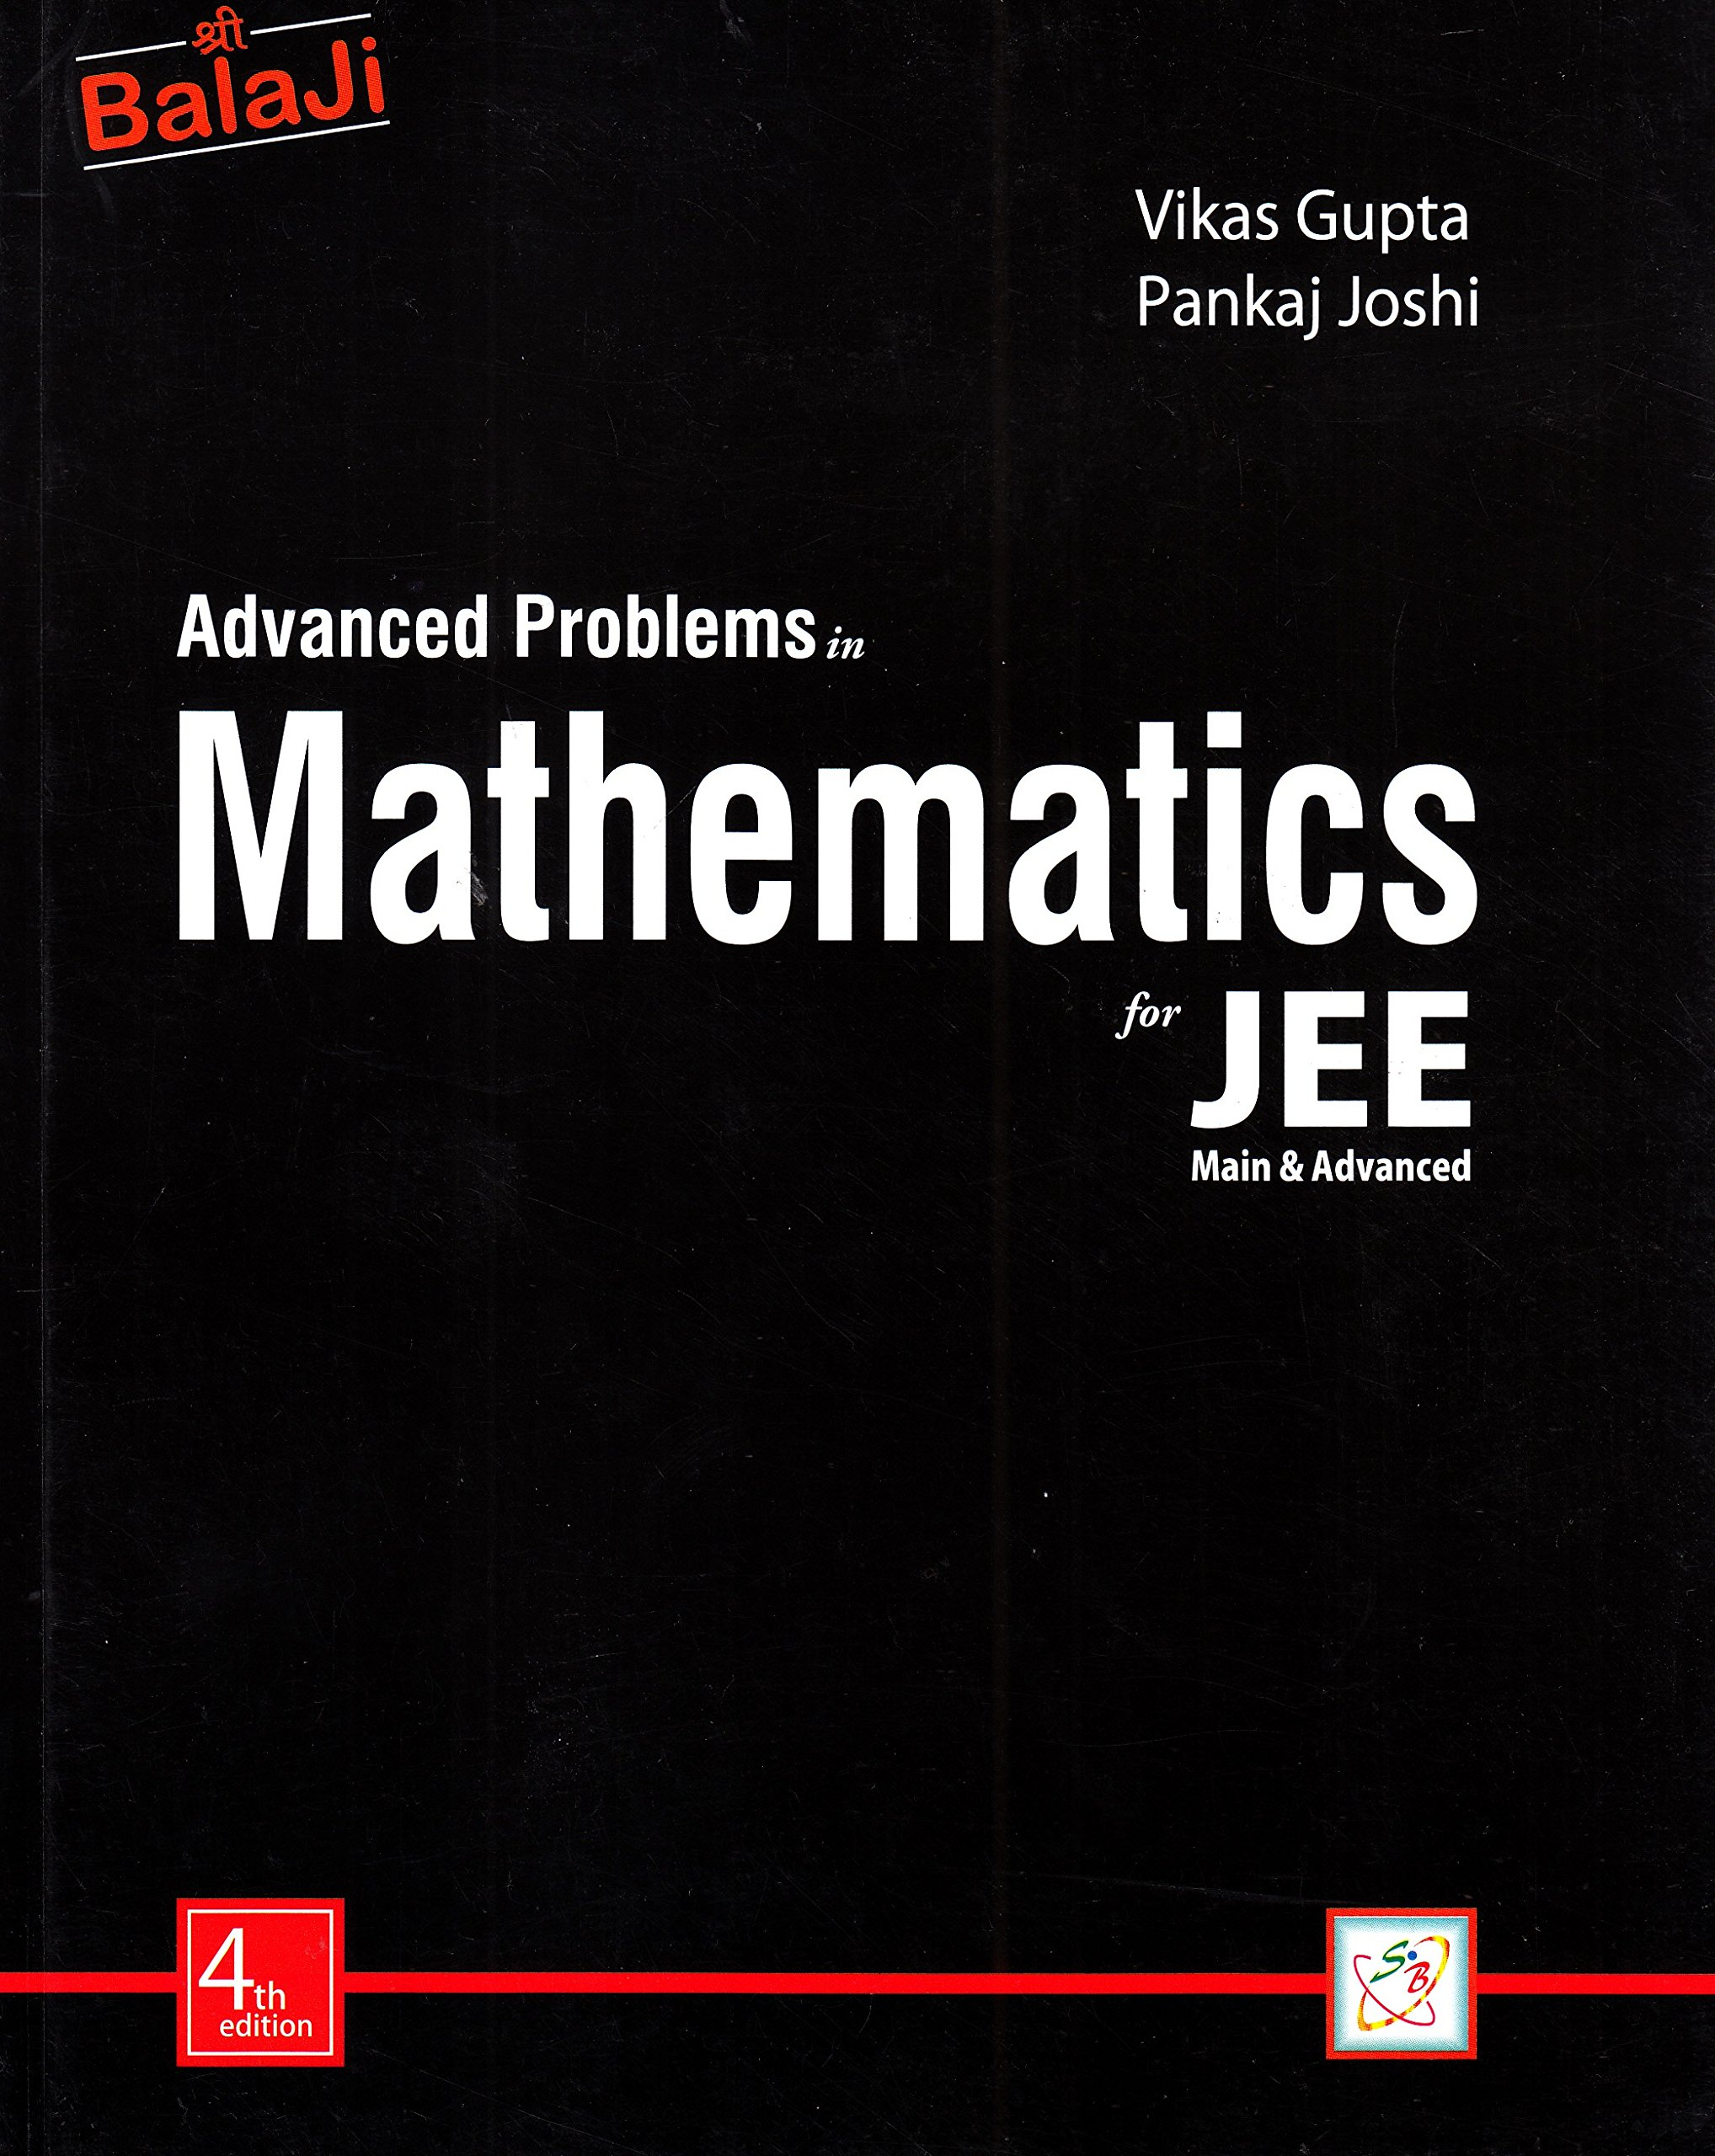 Advanced Problems in Mathematics for JEE Main & Advanced